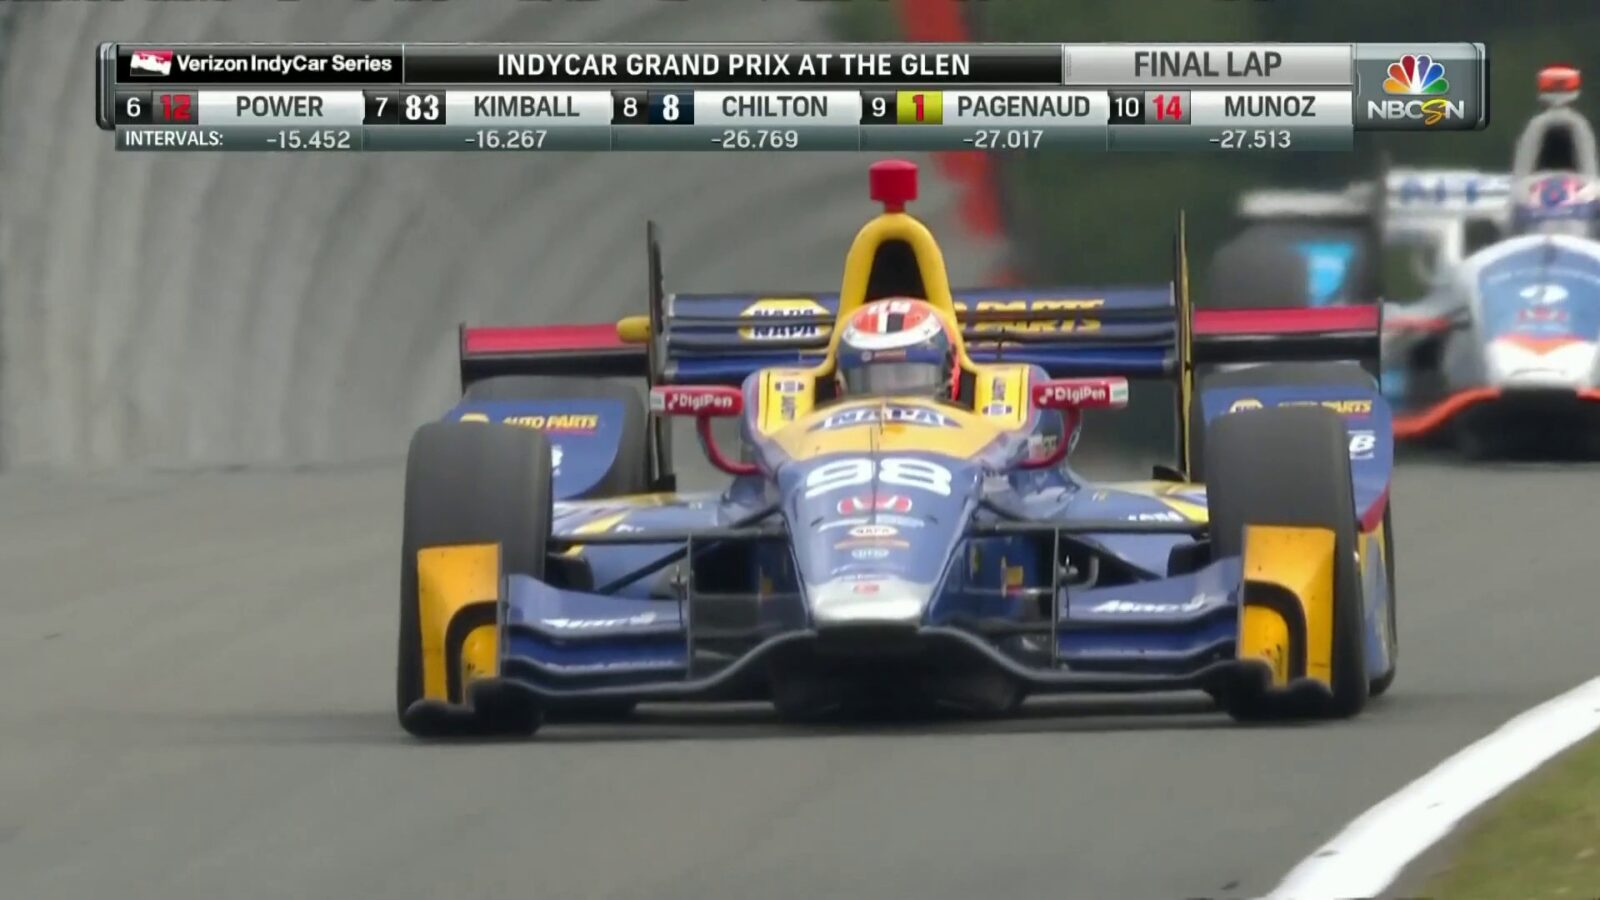 NBC to Air Return of Live INDYCAR Racing June 6th